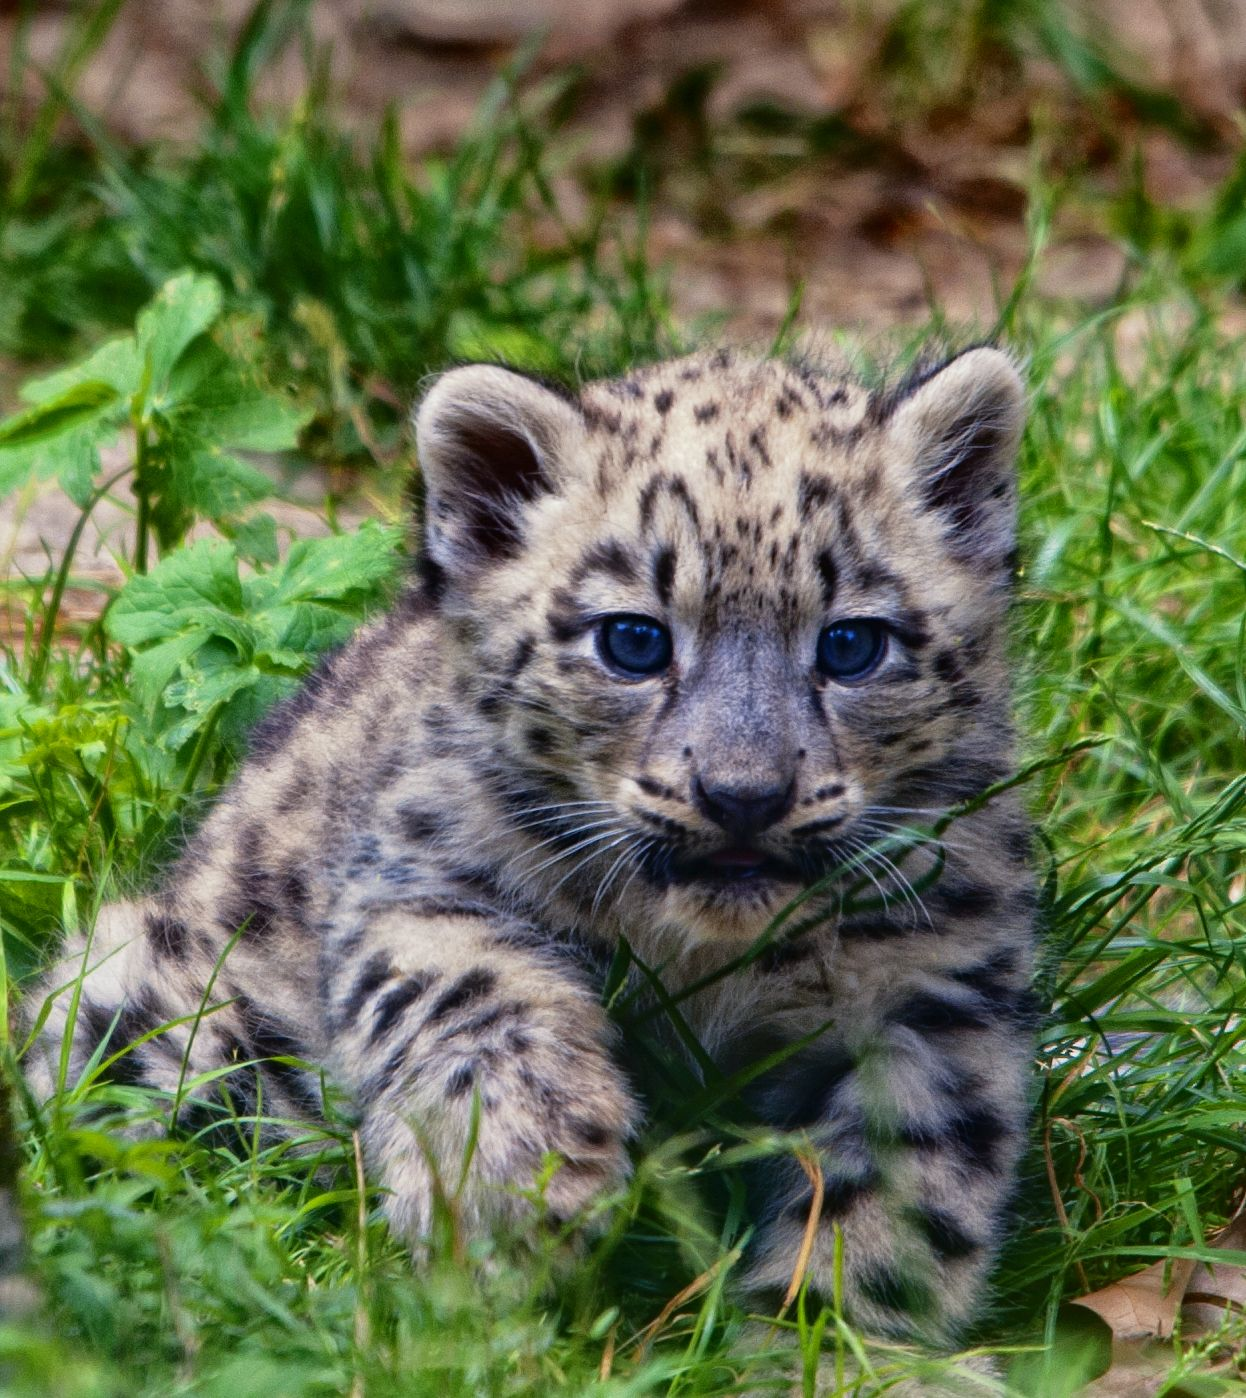 Cute baby snow leopard cubs - photo#21